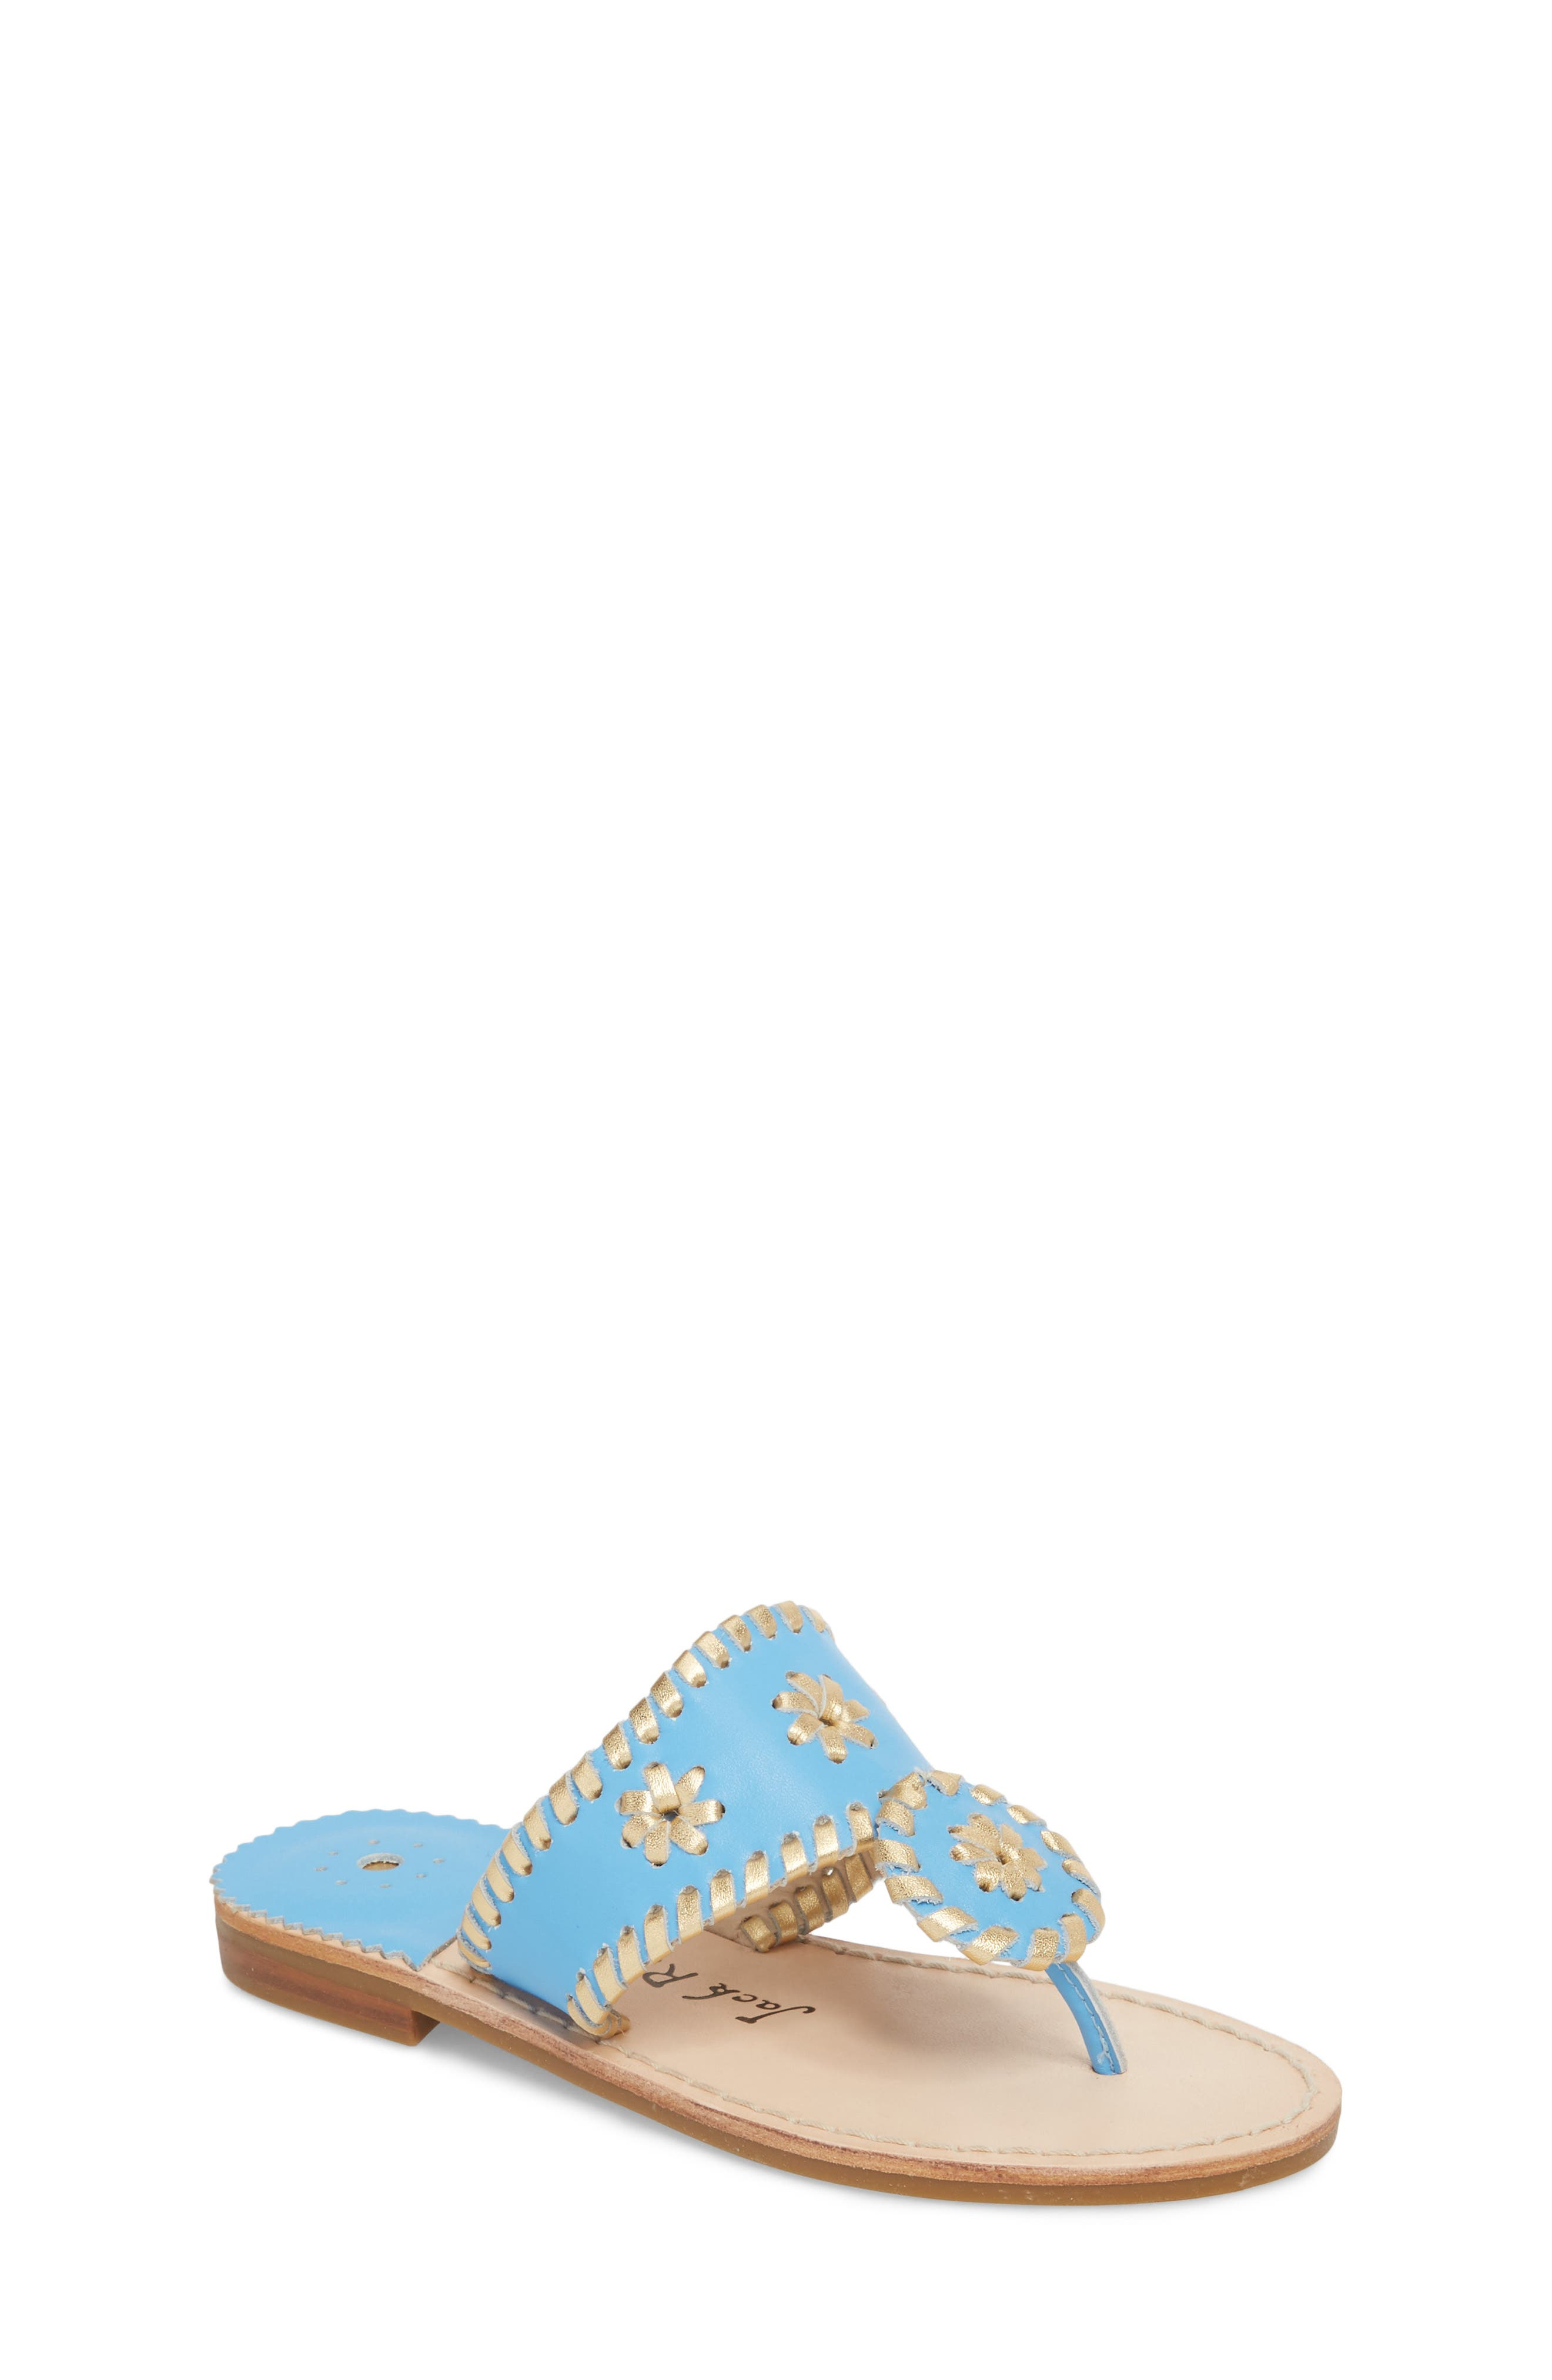 Miss Hollis Metallic Trim Thong Sandal,                         Main,                         color, FRENCH BLUE/ GOLD LEATHER